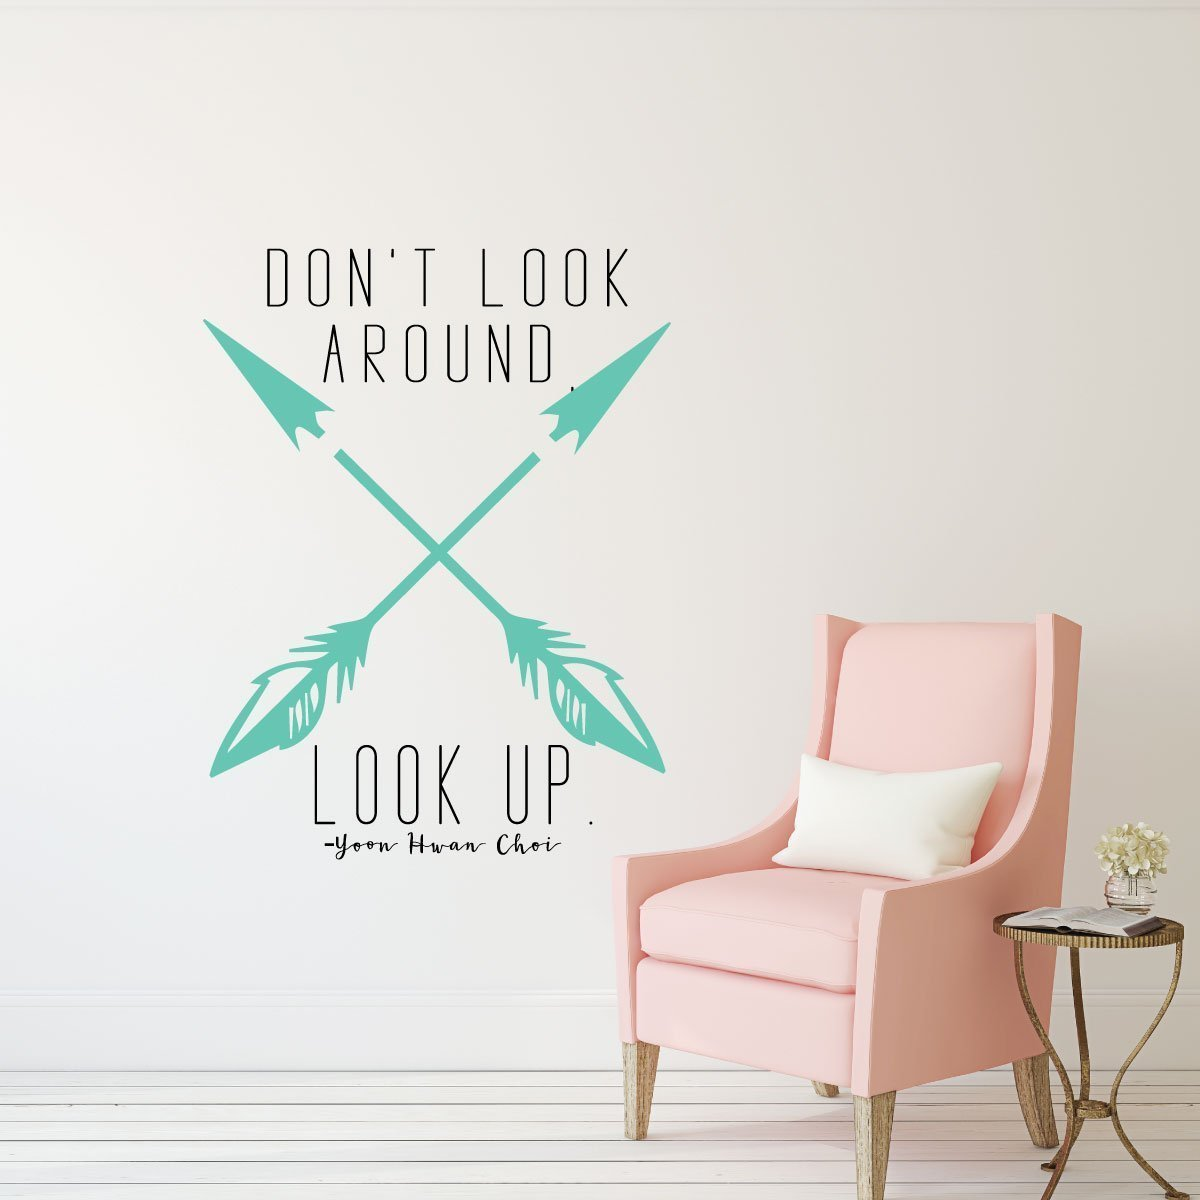 Lds quotes don 39 t look around look up religious decals for Teen wall decor